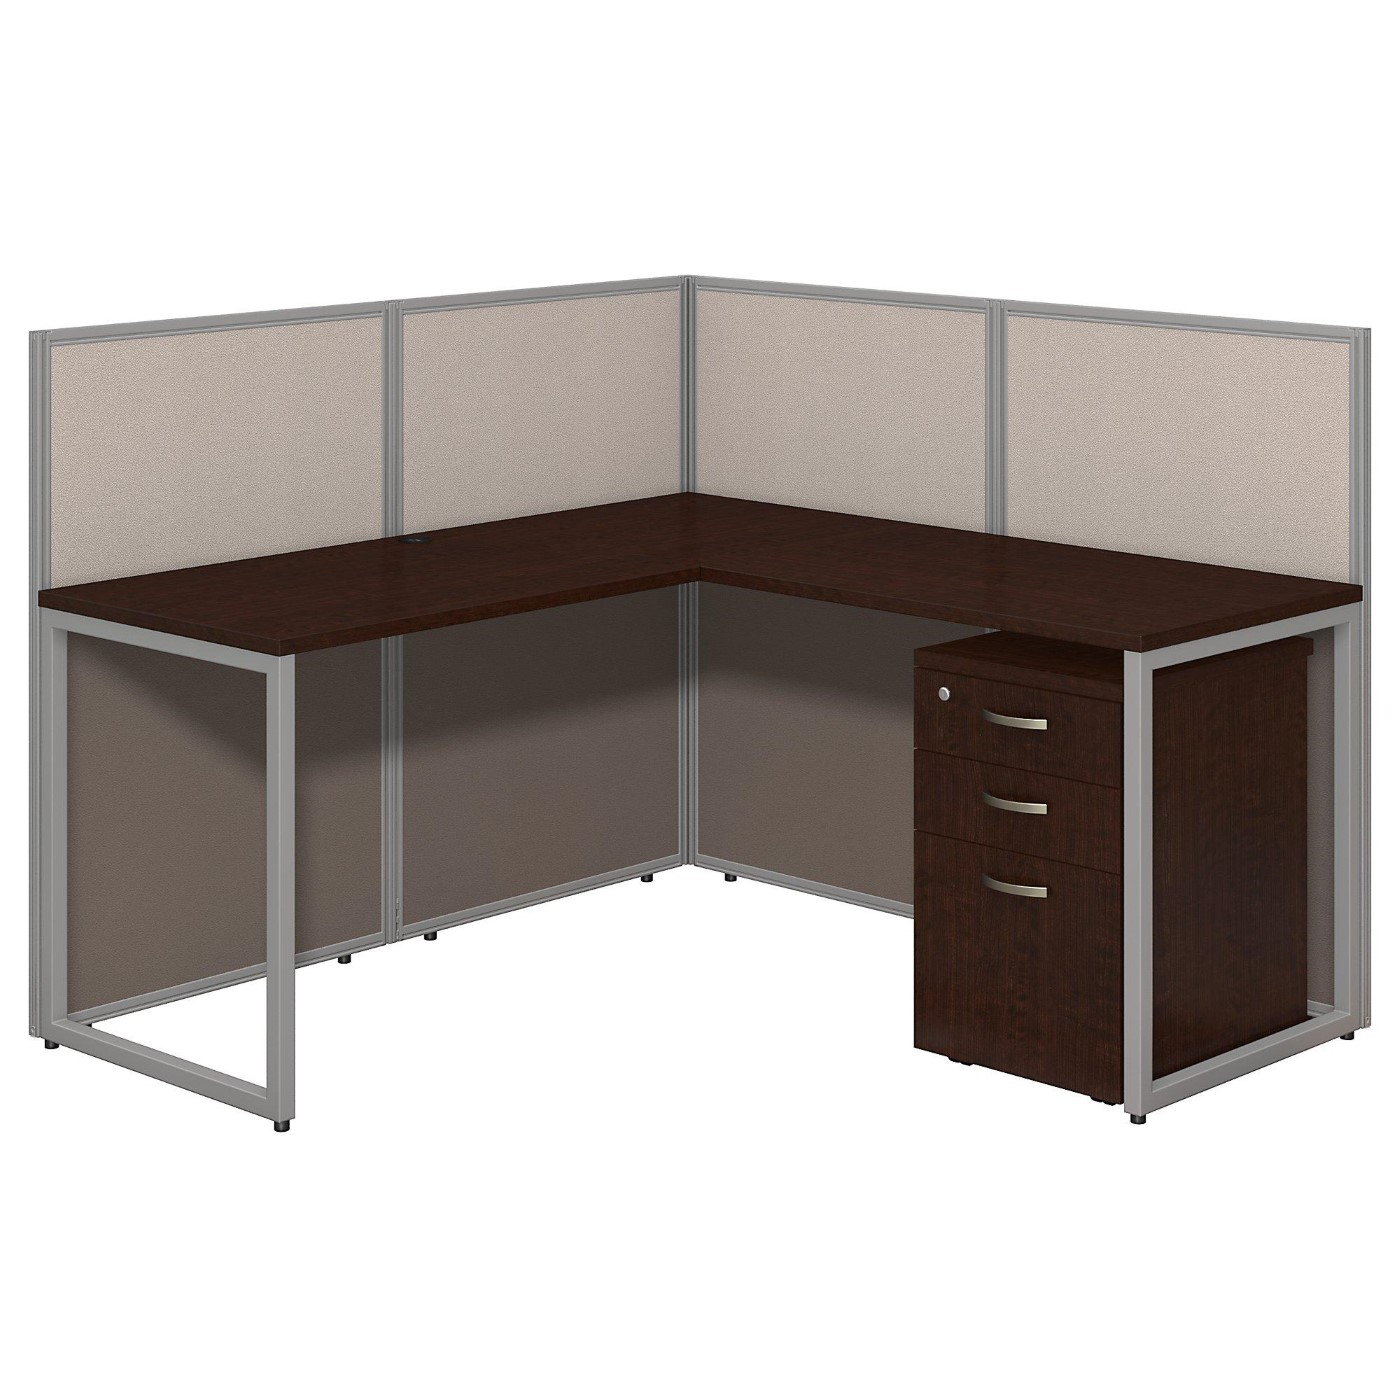 BUSH BUSINESS FURNITURE EASY OFFICE 60W L SHAPED DESK OPEN OFFICE WITH MOBILE FILE CABINET. FREE SHIPPING.